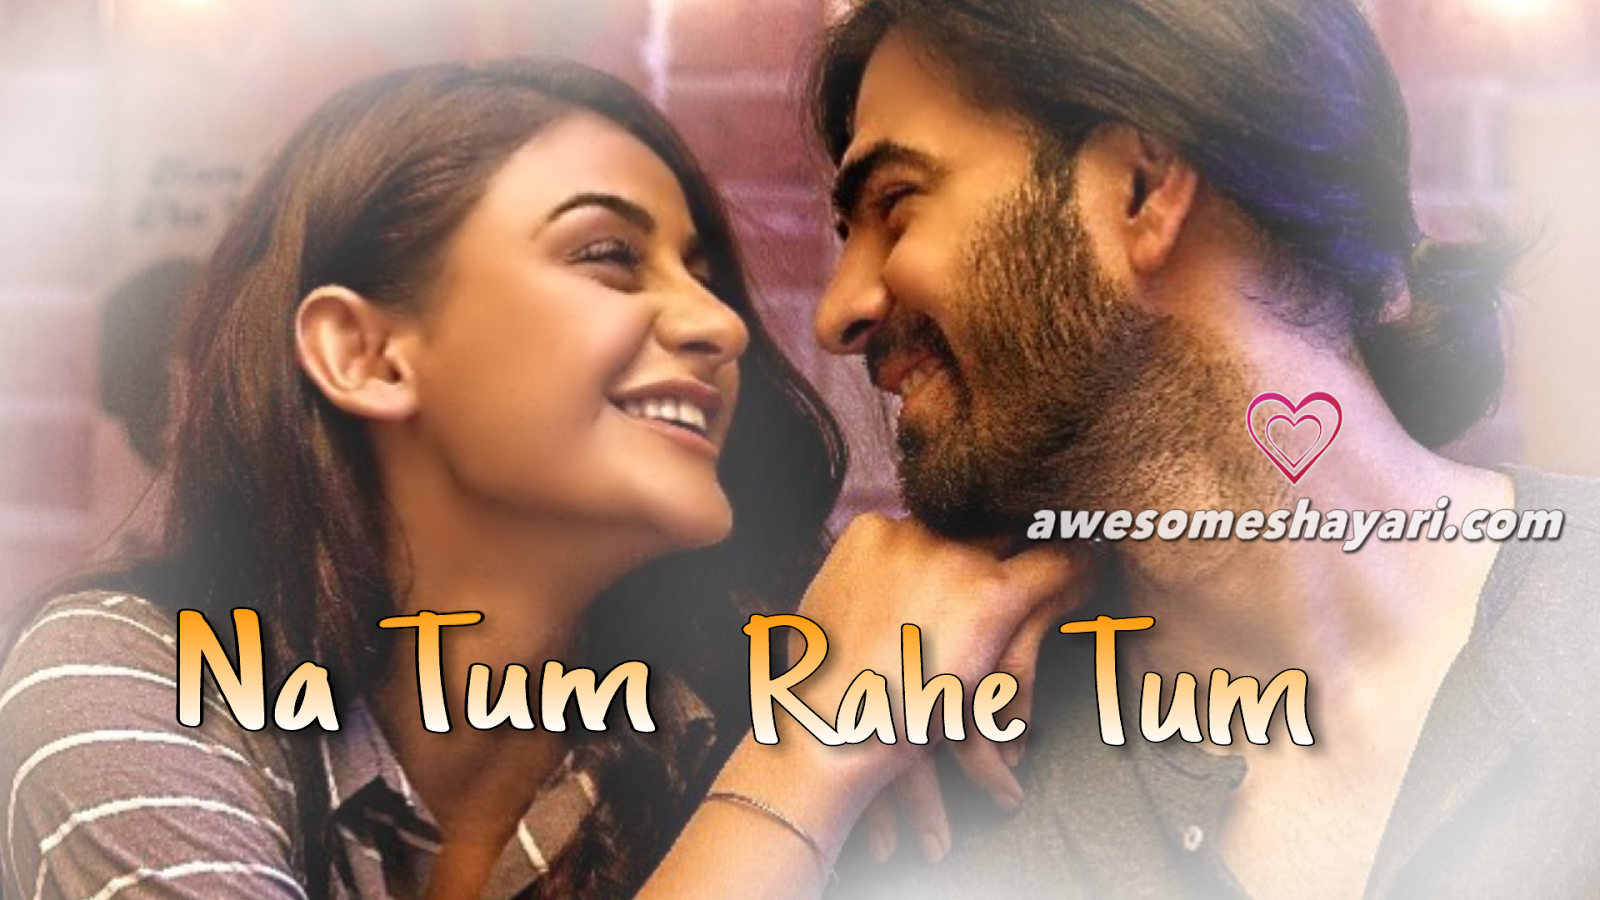 Spotlight 2 web series songs, Aditi arya in spotlight, Na Tum Rahe Tum